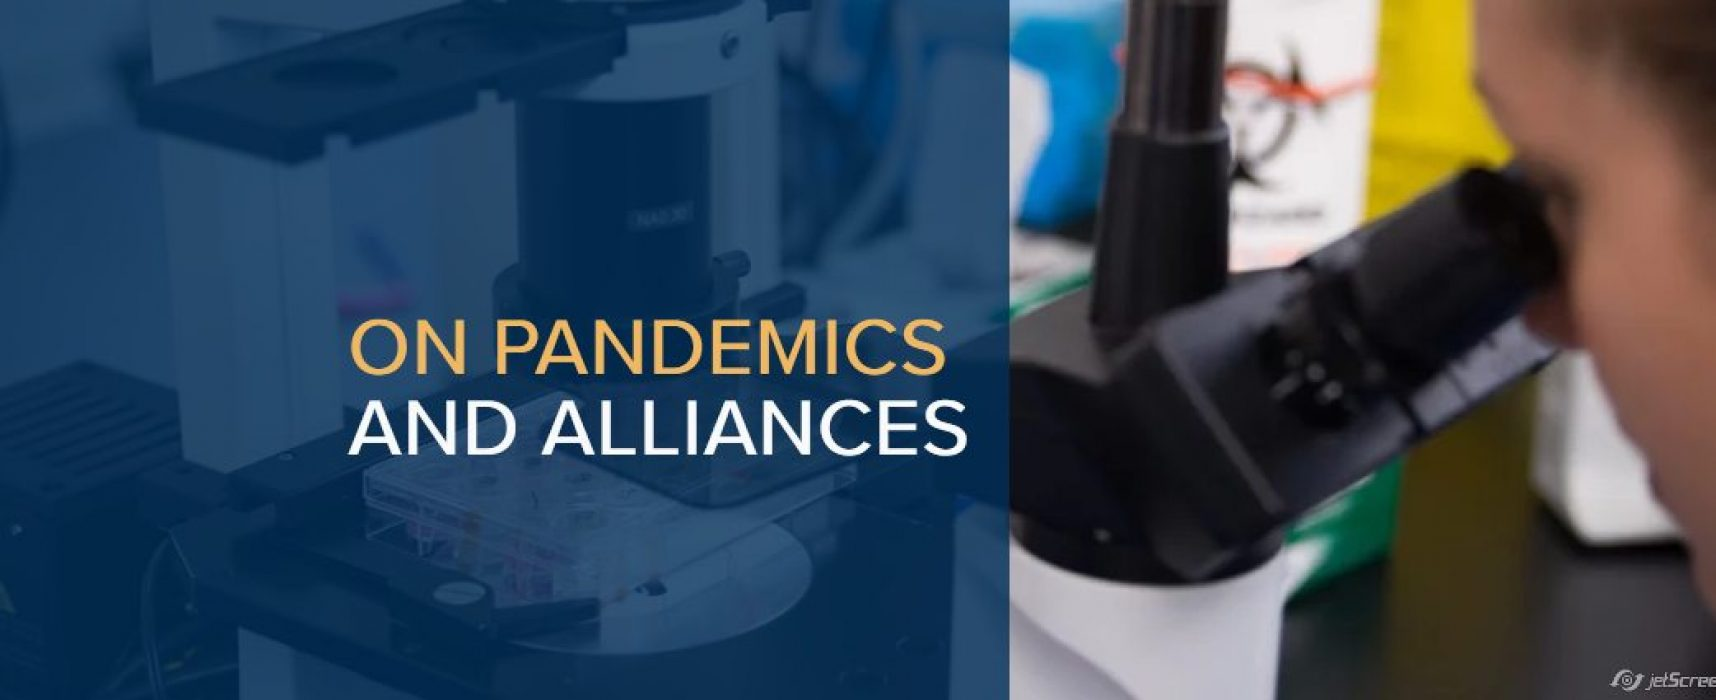 On pandemics and alliances